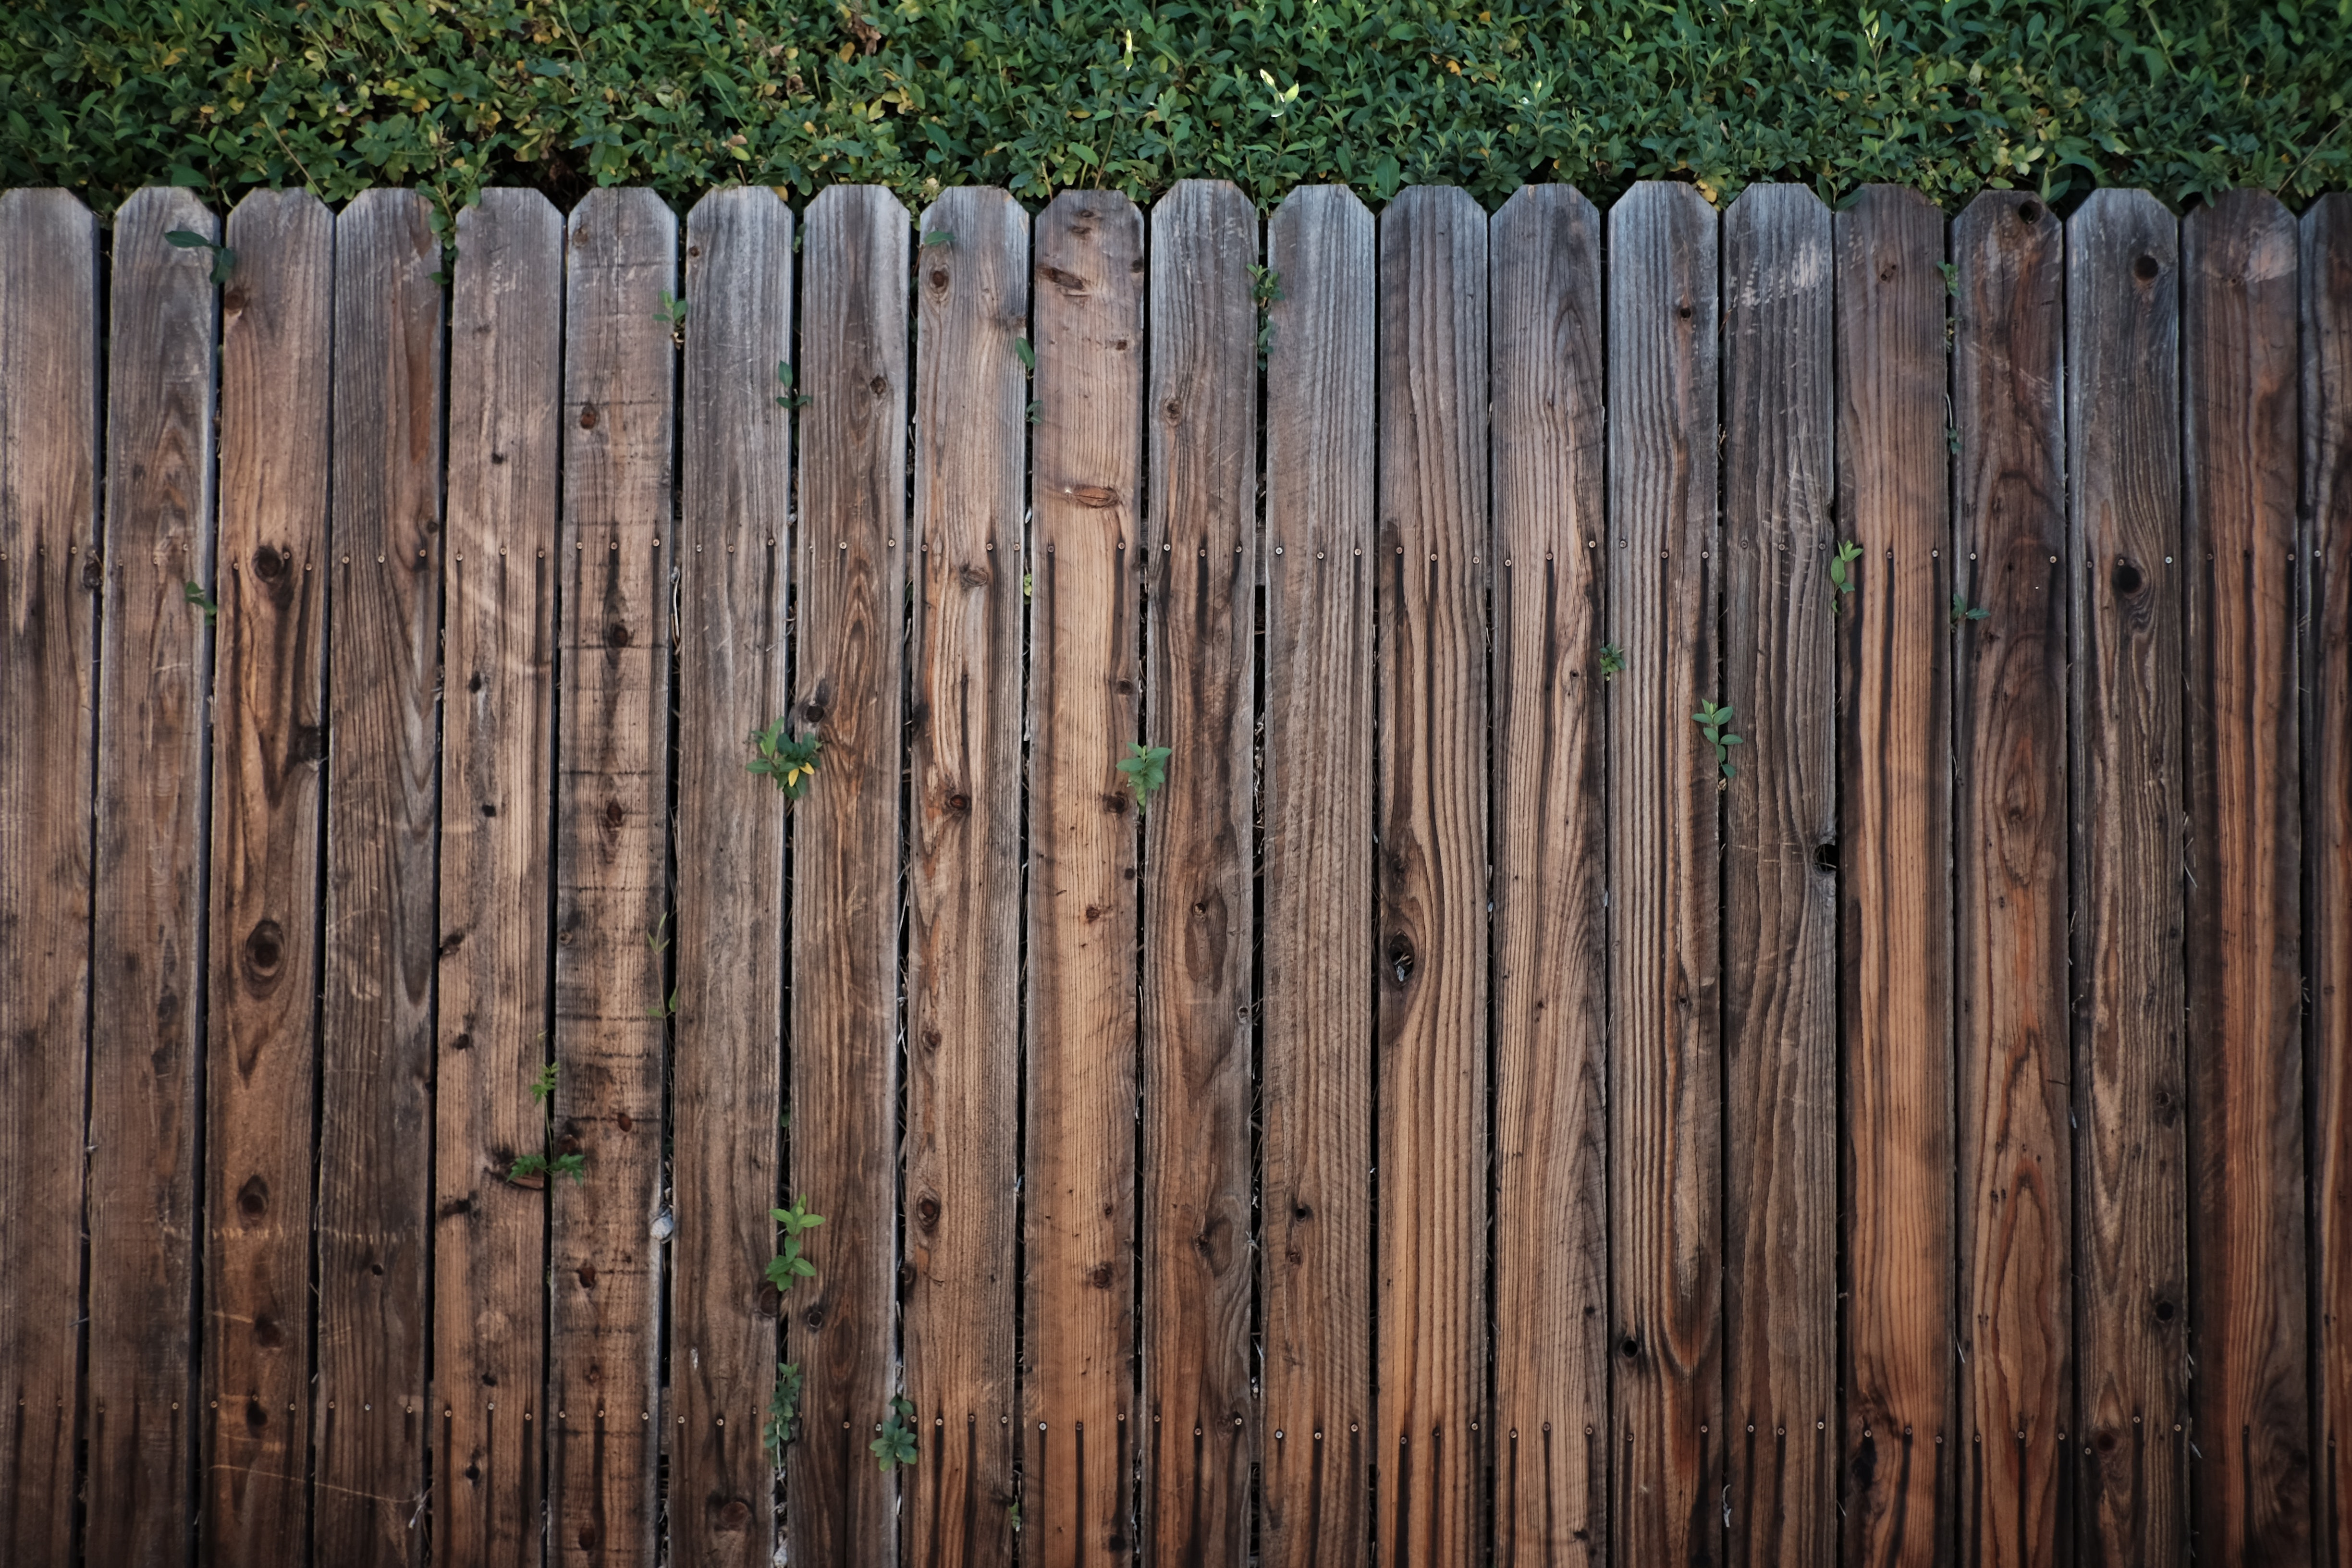 Relocatable & Priced To Sell Established Fence Staining Business